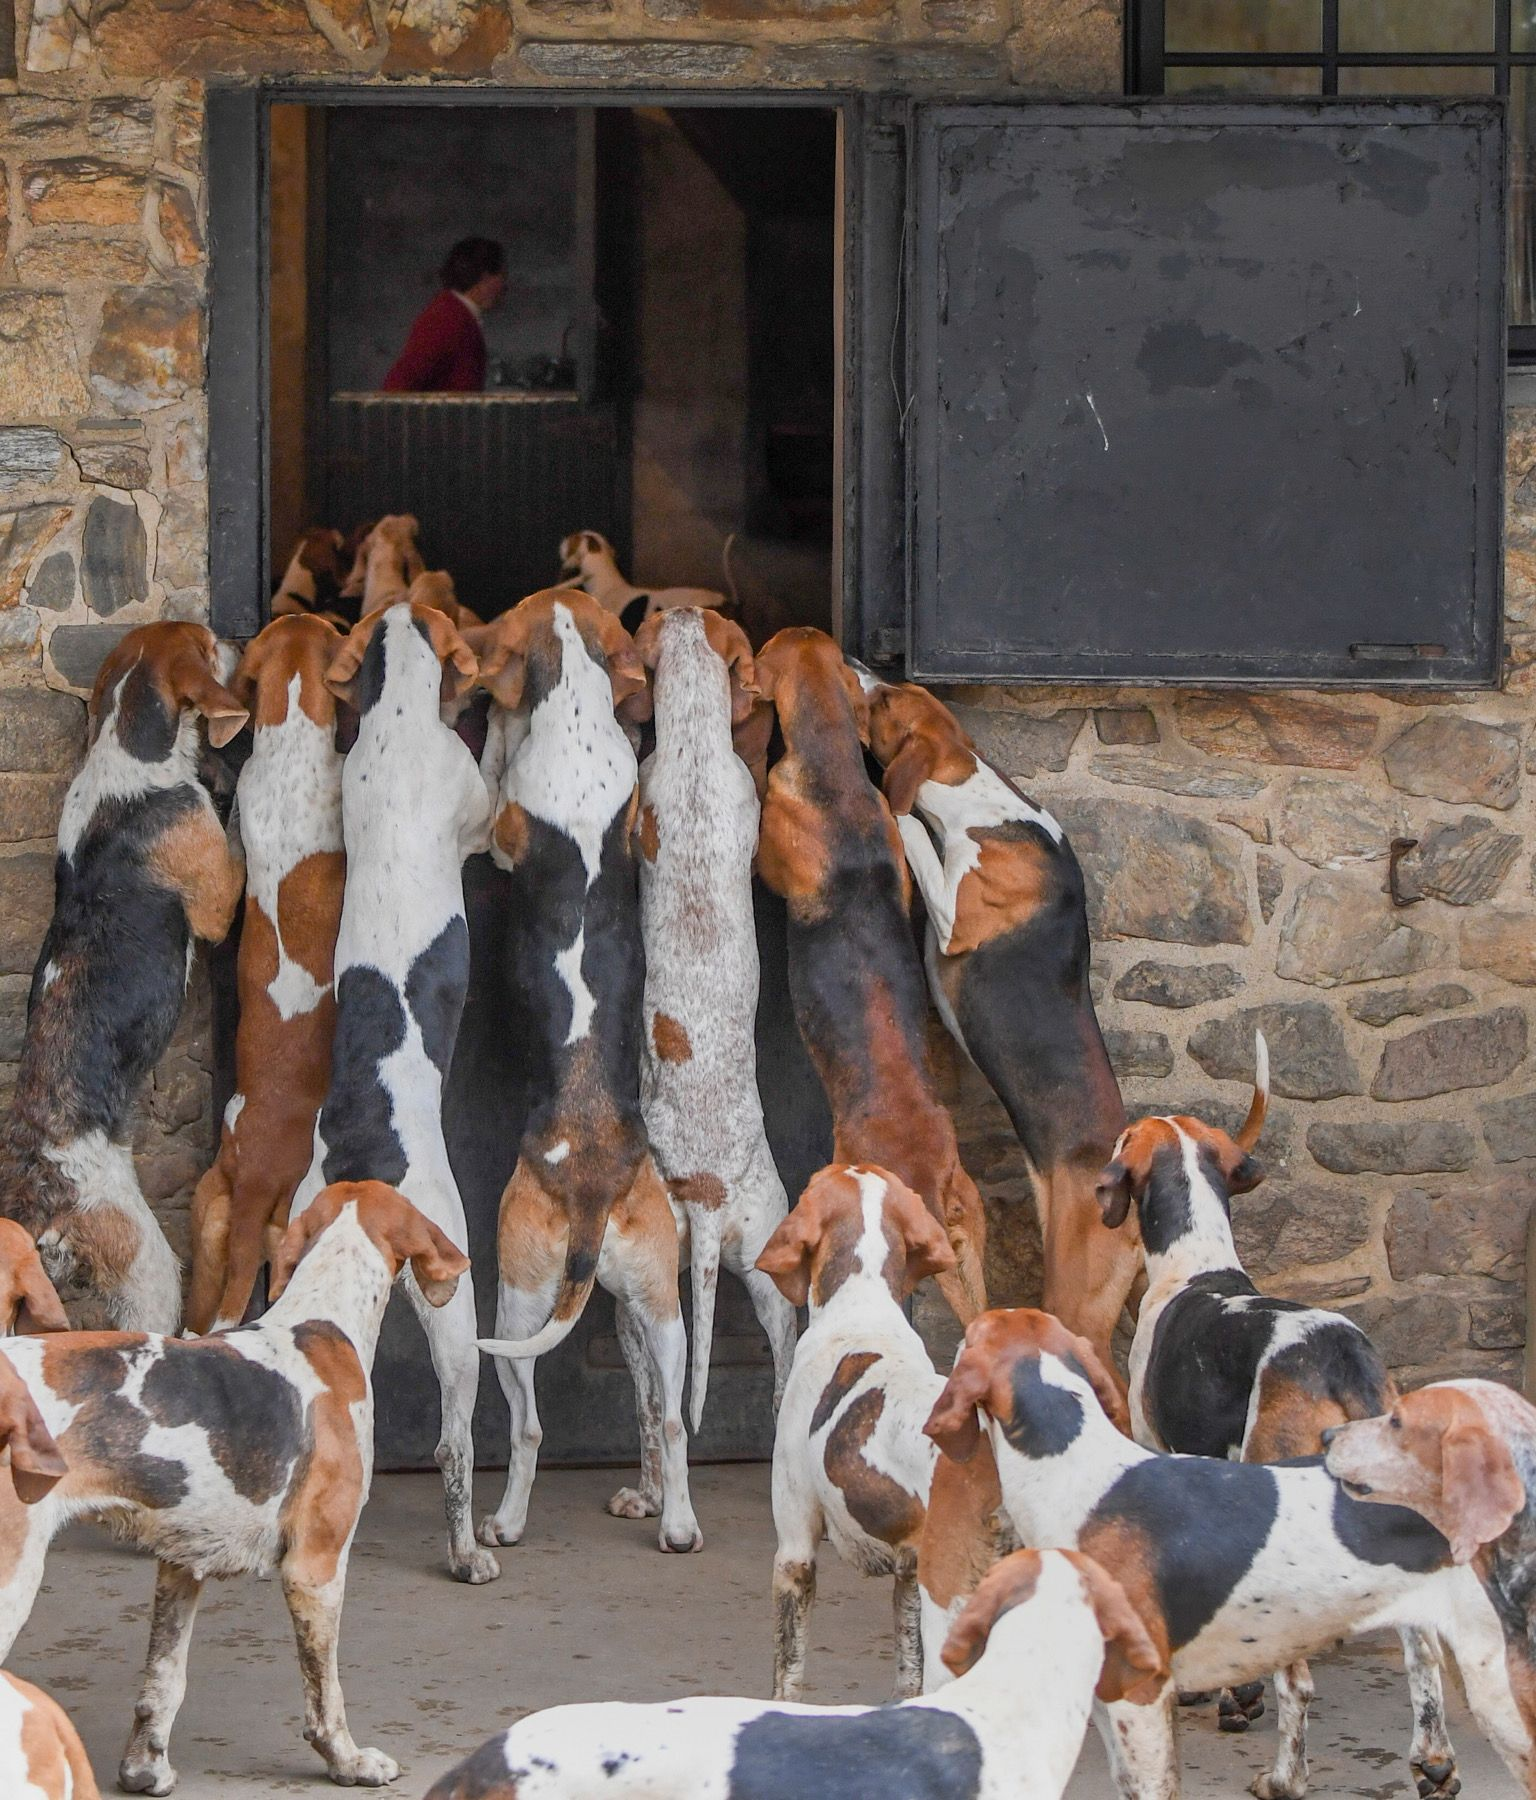 Pin By James Perkins On Fox Hunting The Fox And The Hound Treeing Walker Coonhound Foxhound Dog